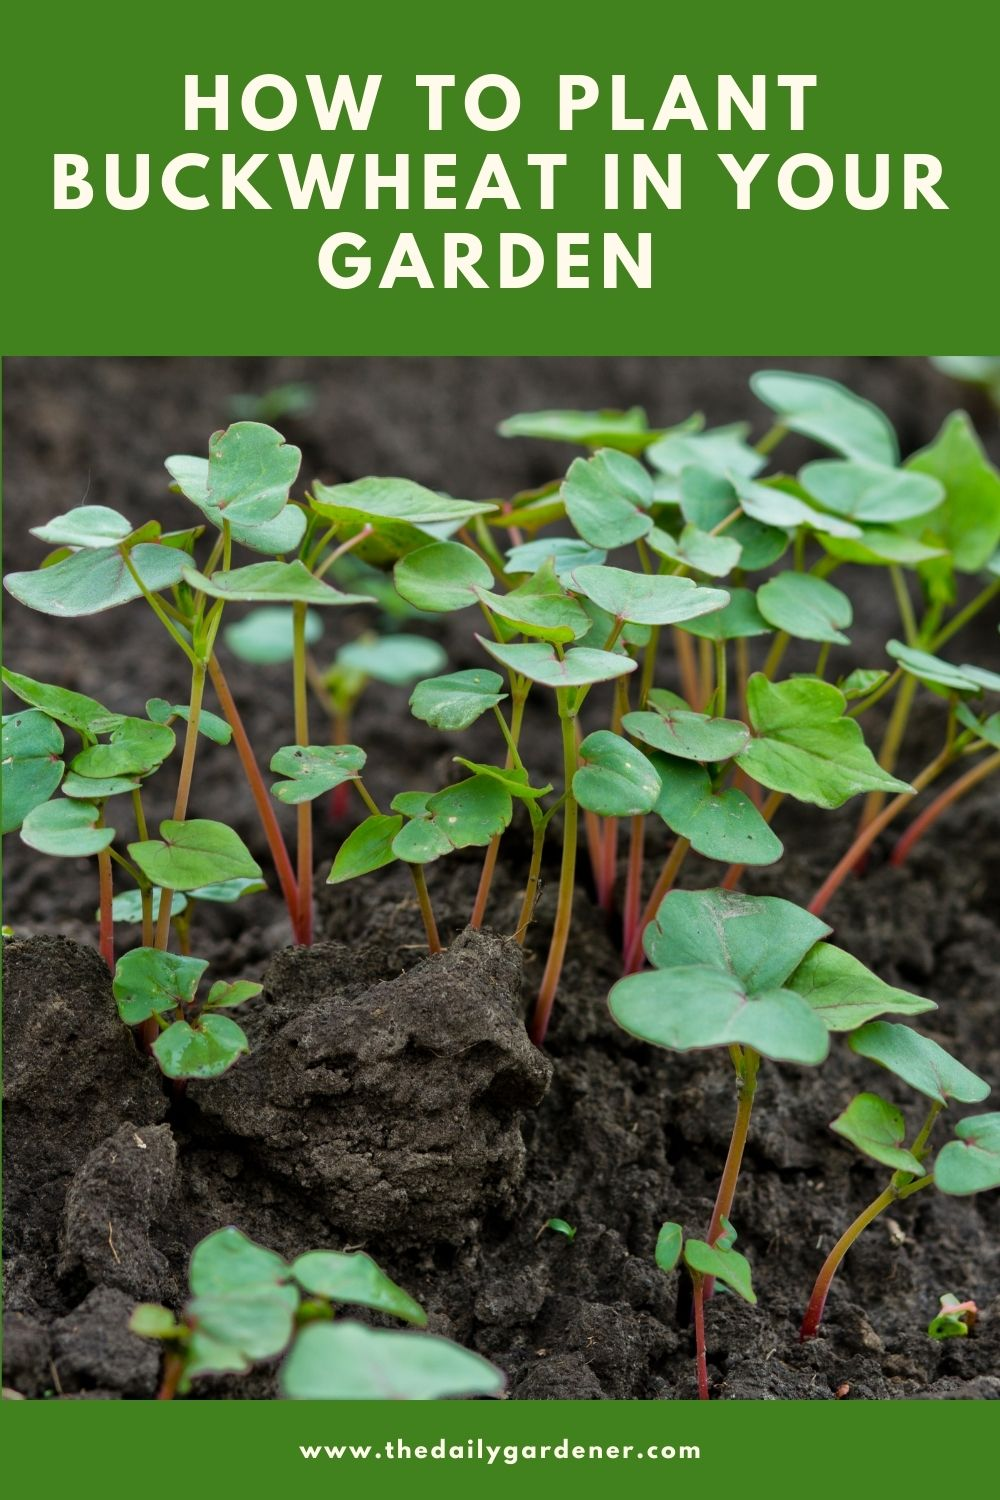 How to Plant Buckwheat in Your Garden 1